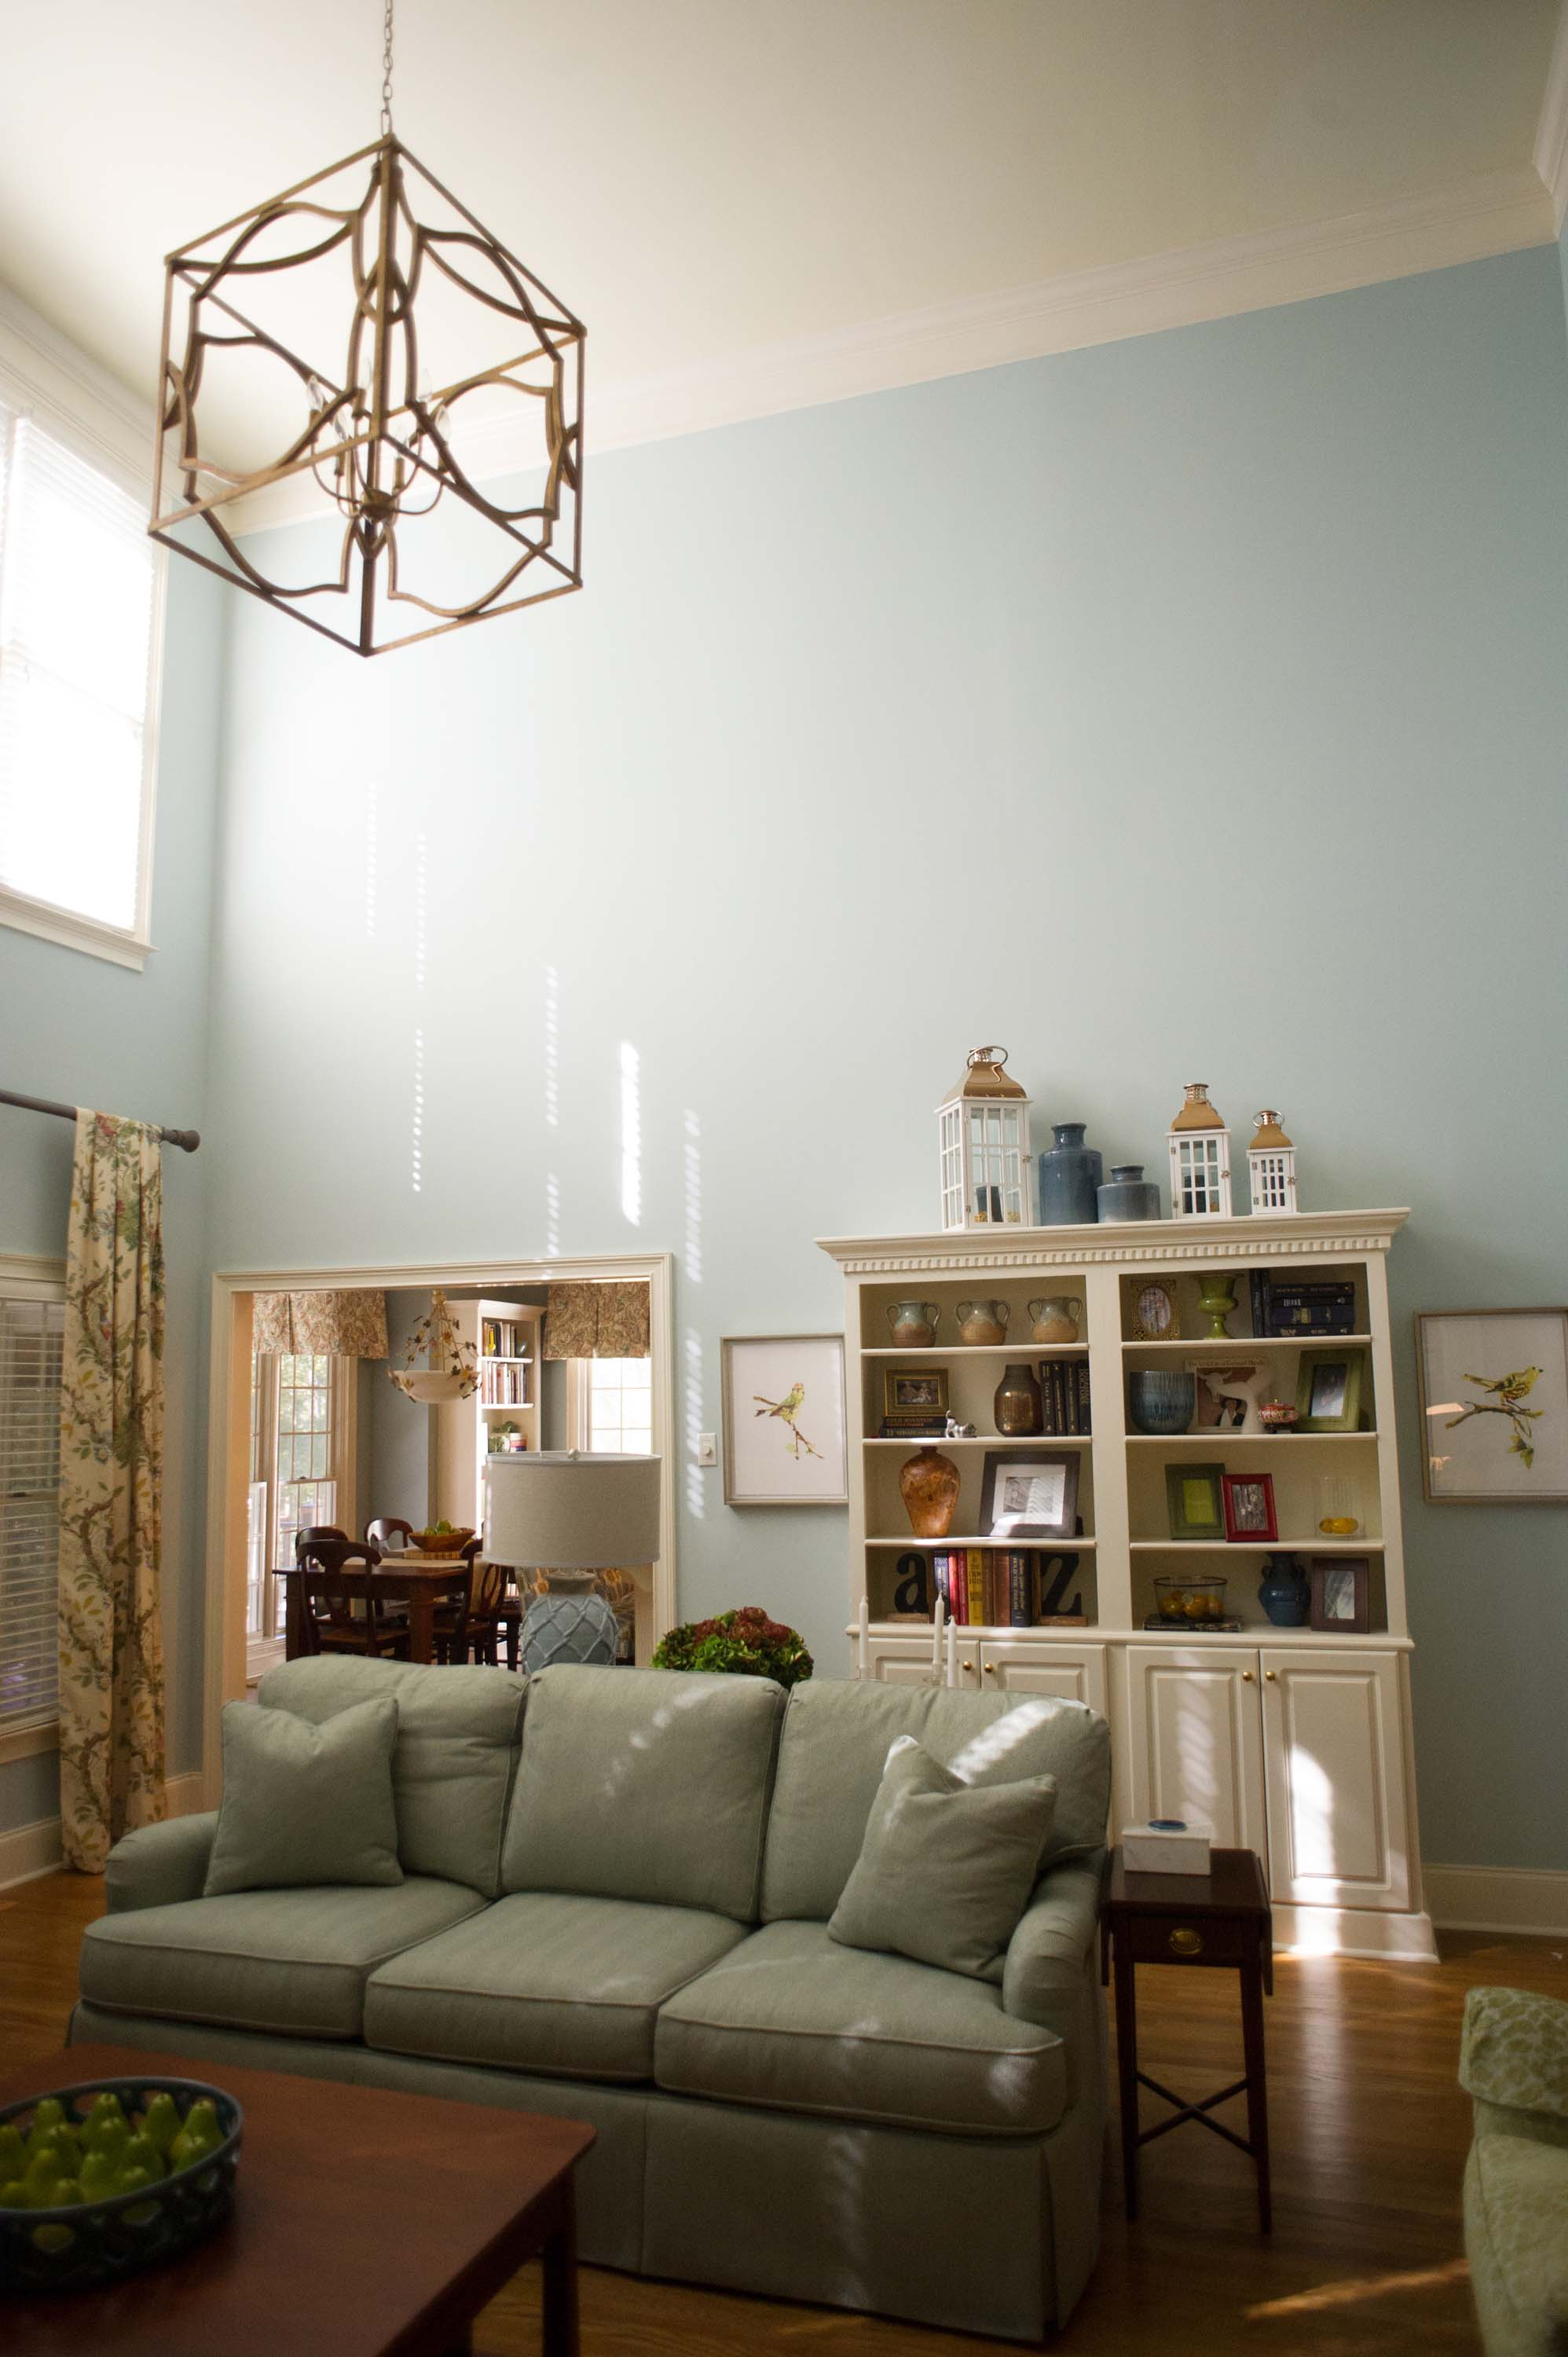 Living room with high ceiling and pastel painted wall